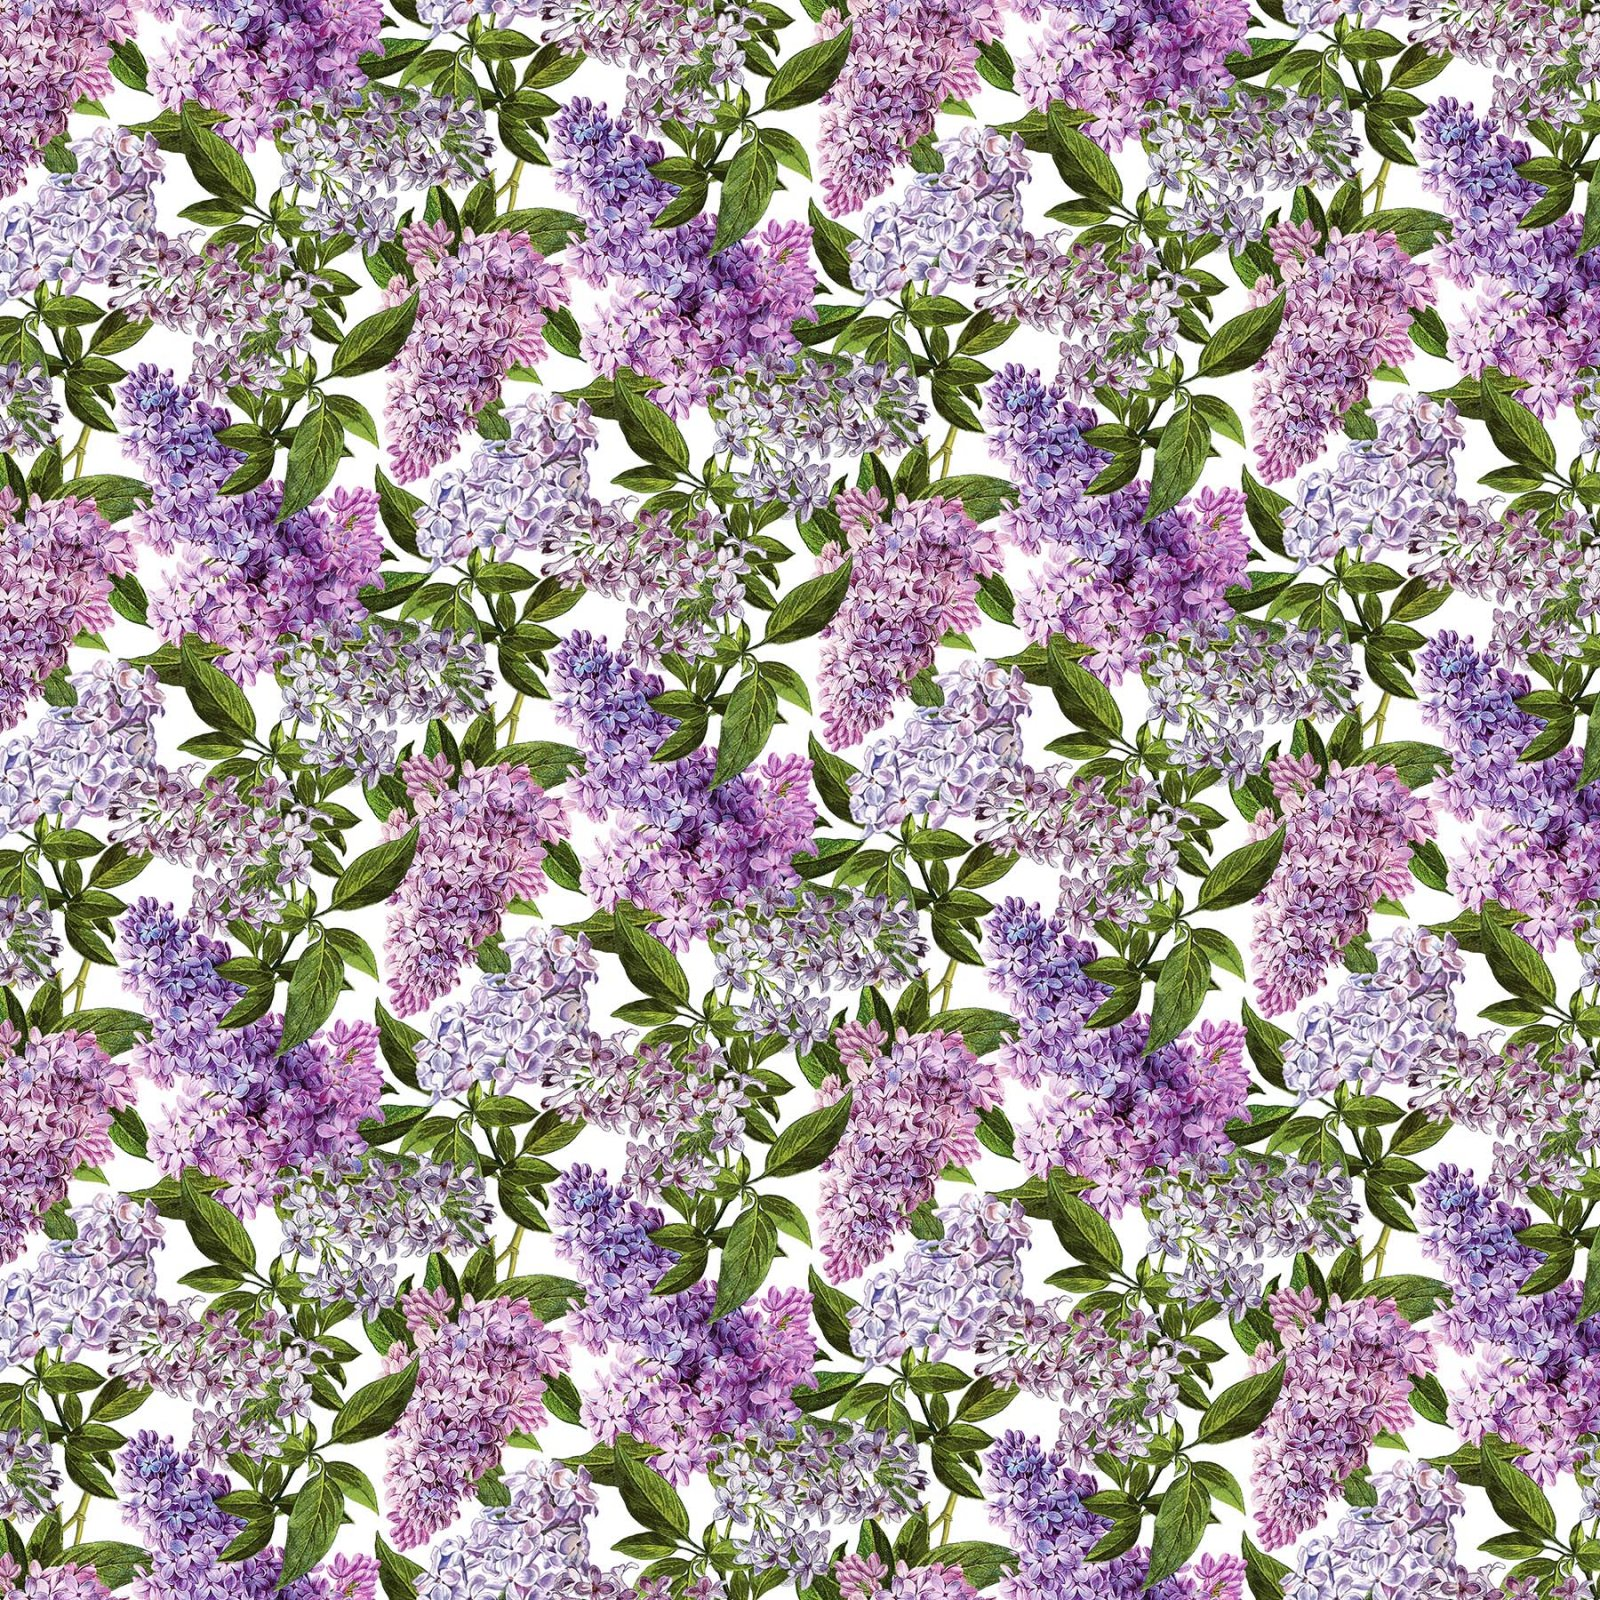 Chelsea - Digitally Printed Lilacs on White